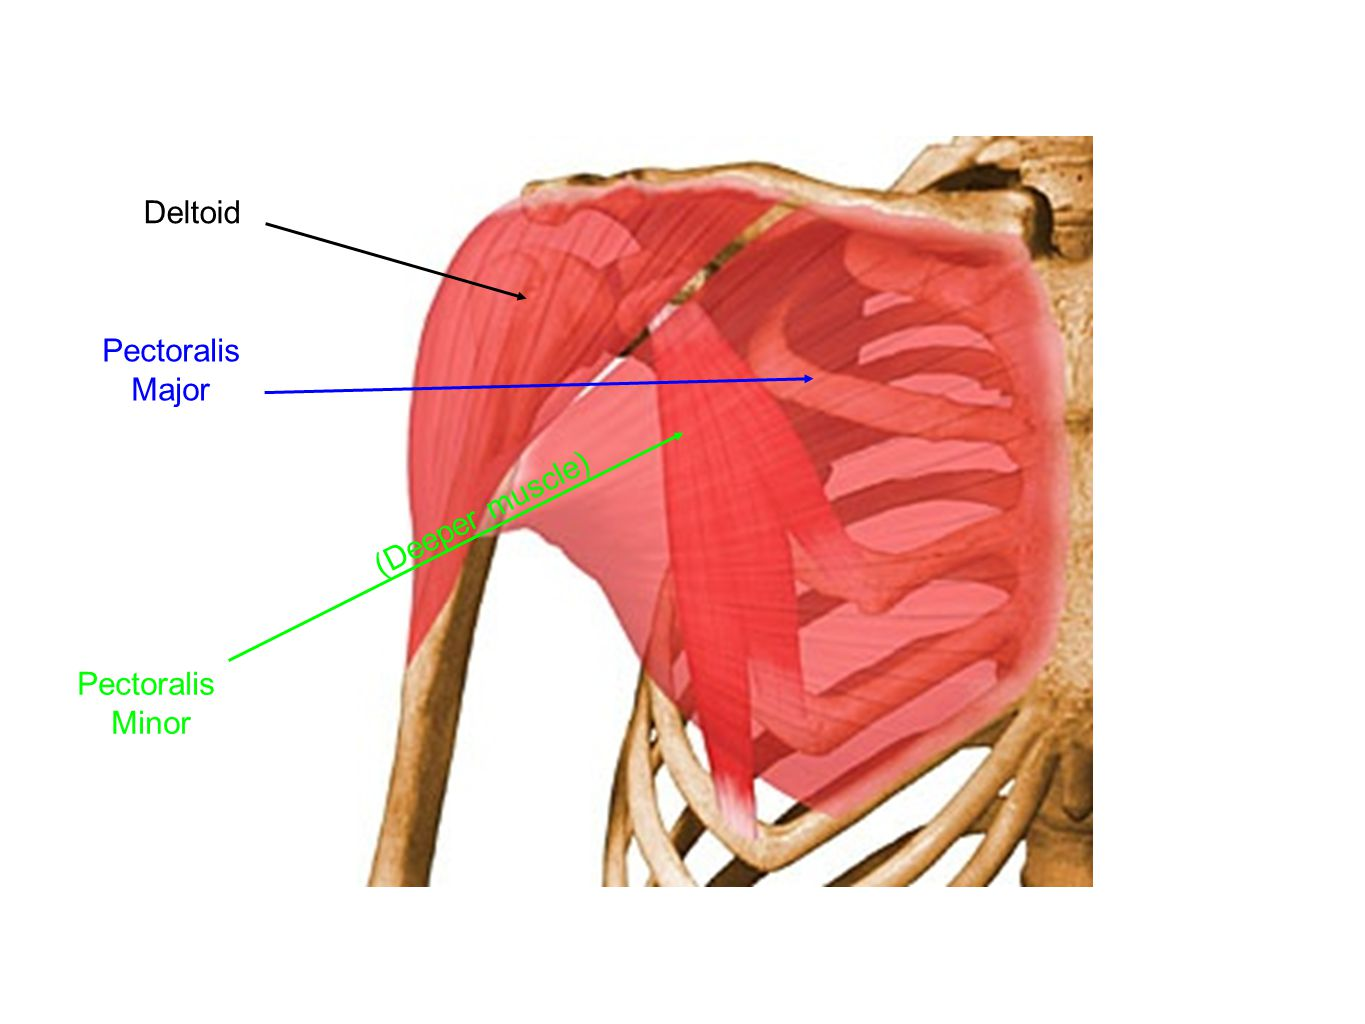 Deltoid Pectoralis Major (Deeper muscle) Pectoralis Minor